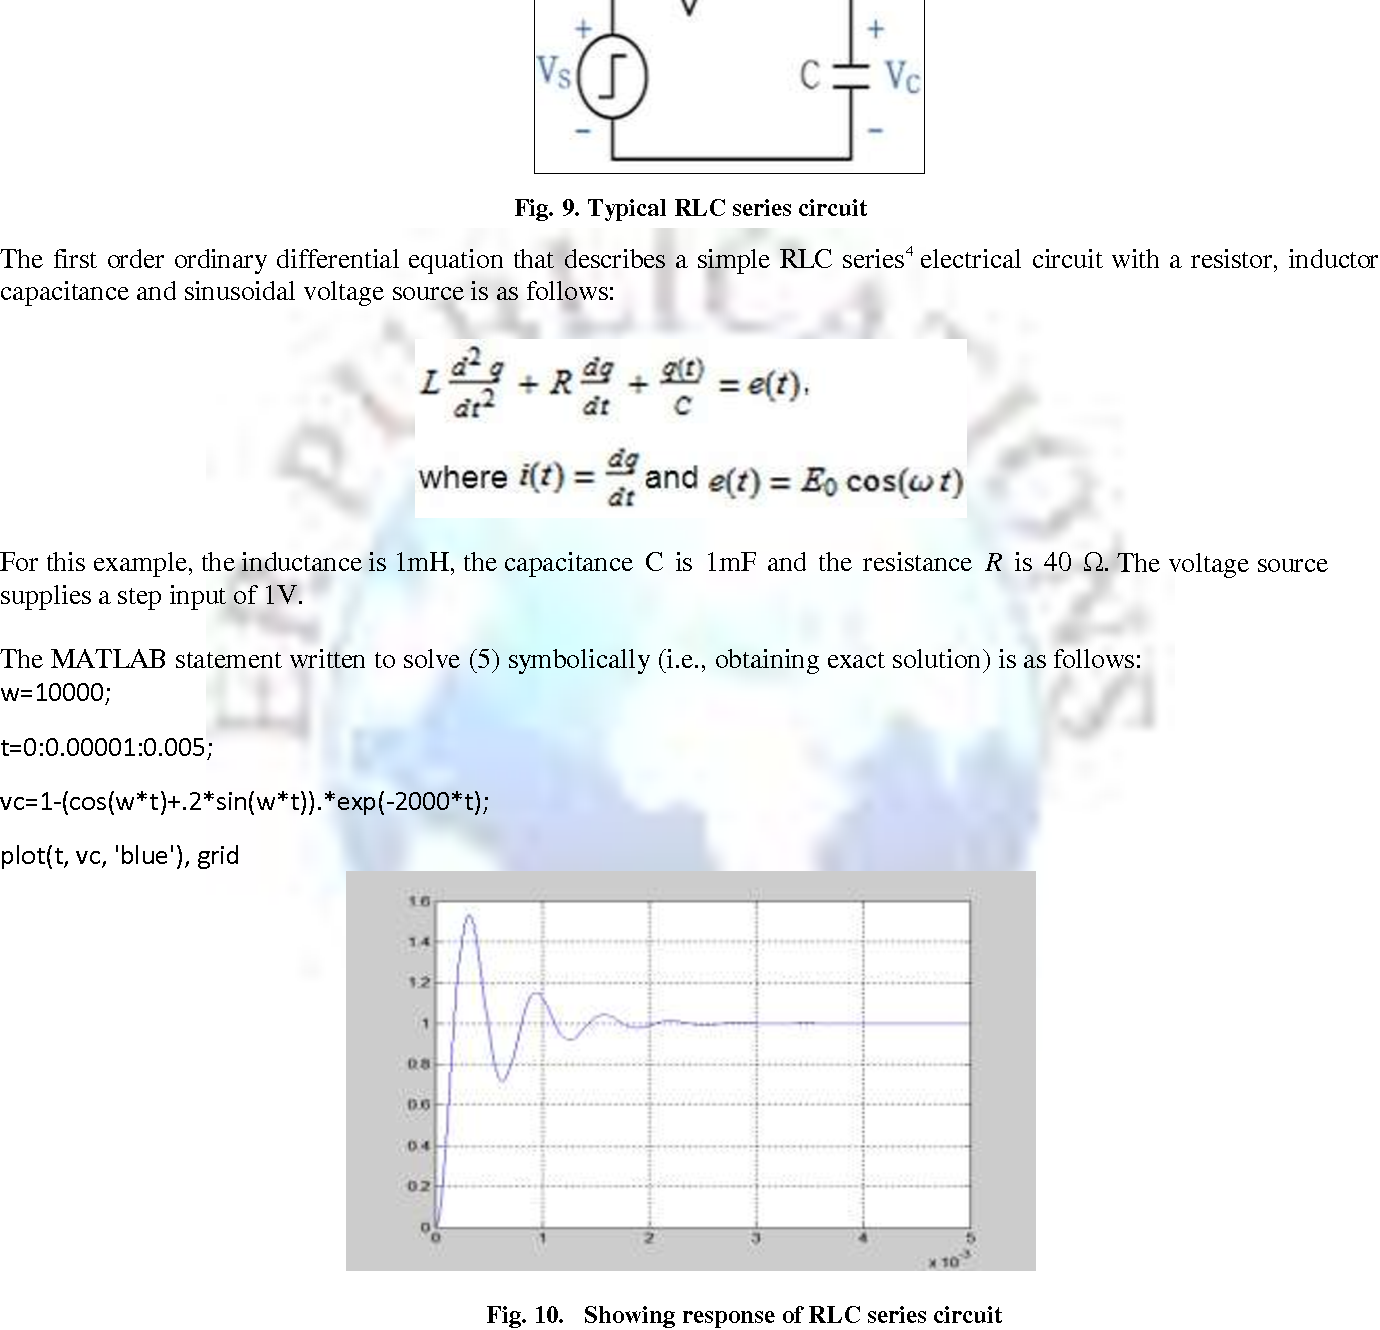 Figure 9 from Circuit Analysis Using Matlab / Simulink ® - Semantic